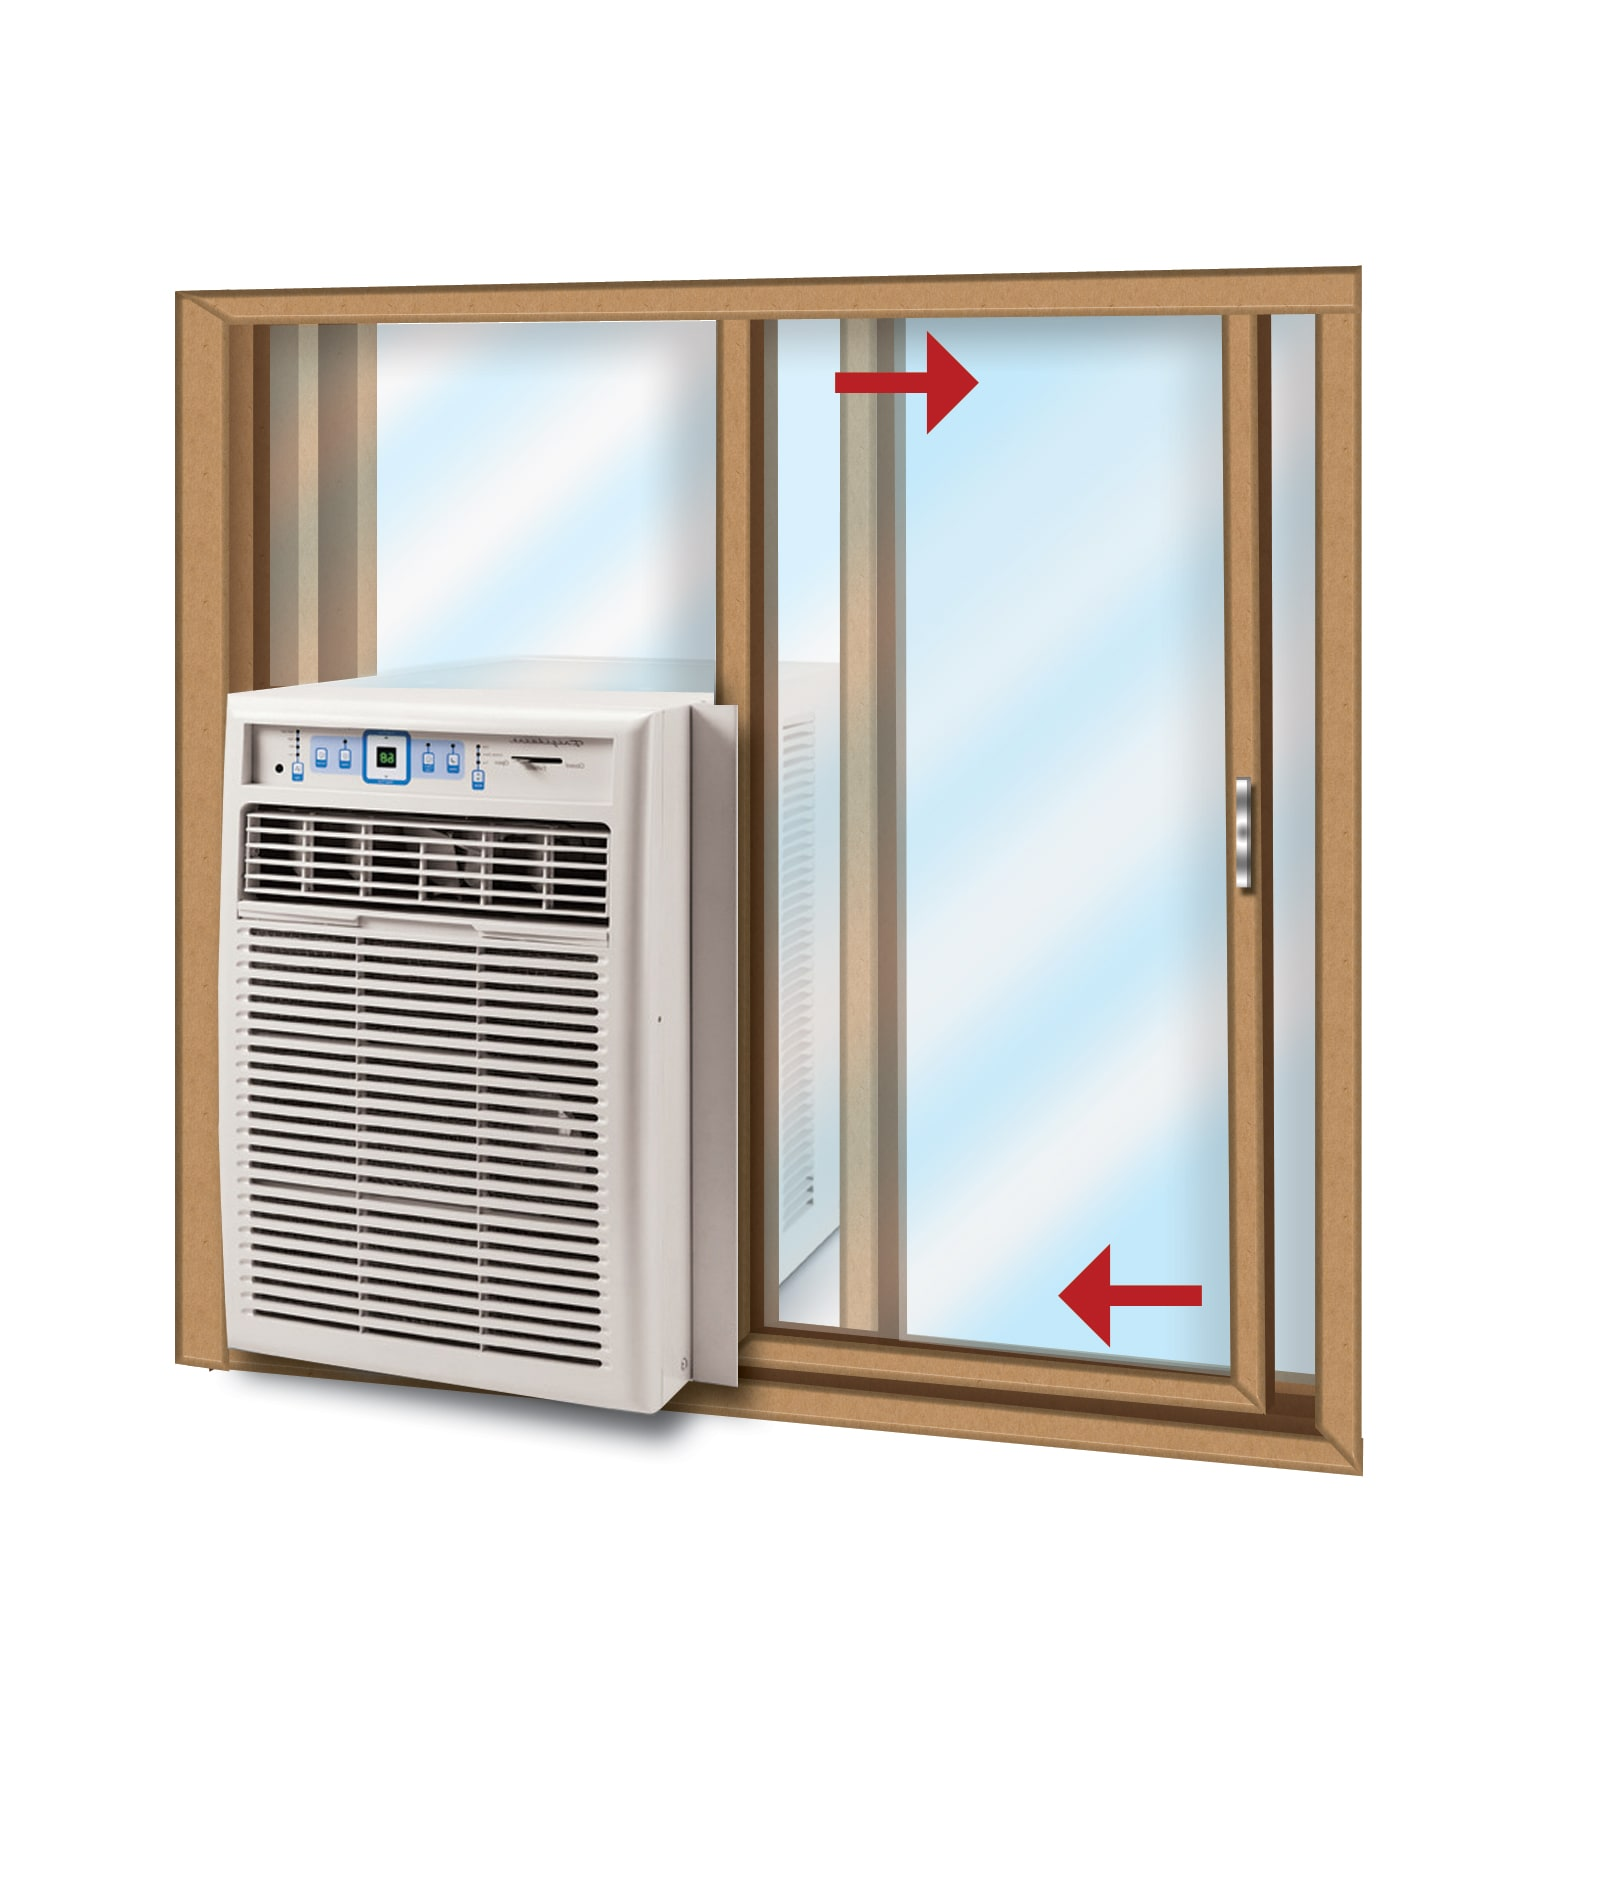 Air Conditioners Ac Circuit Board Prices Conditioner Slider Window Also Come With A Kit But If You Have Particularly Tall May Need To Purchase Additional Plexiglass